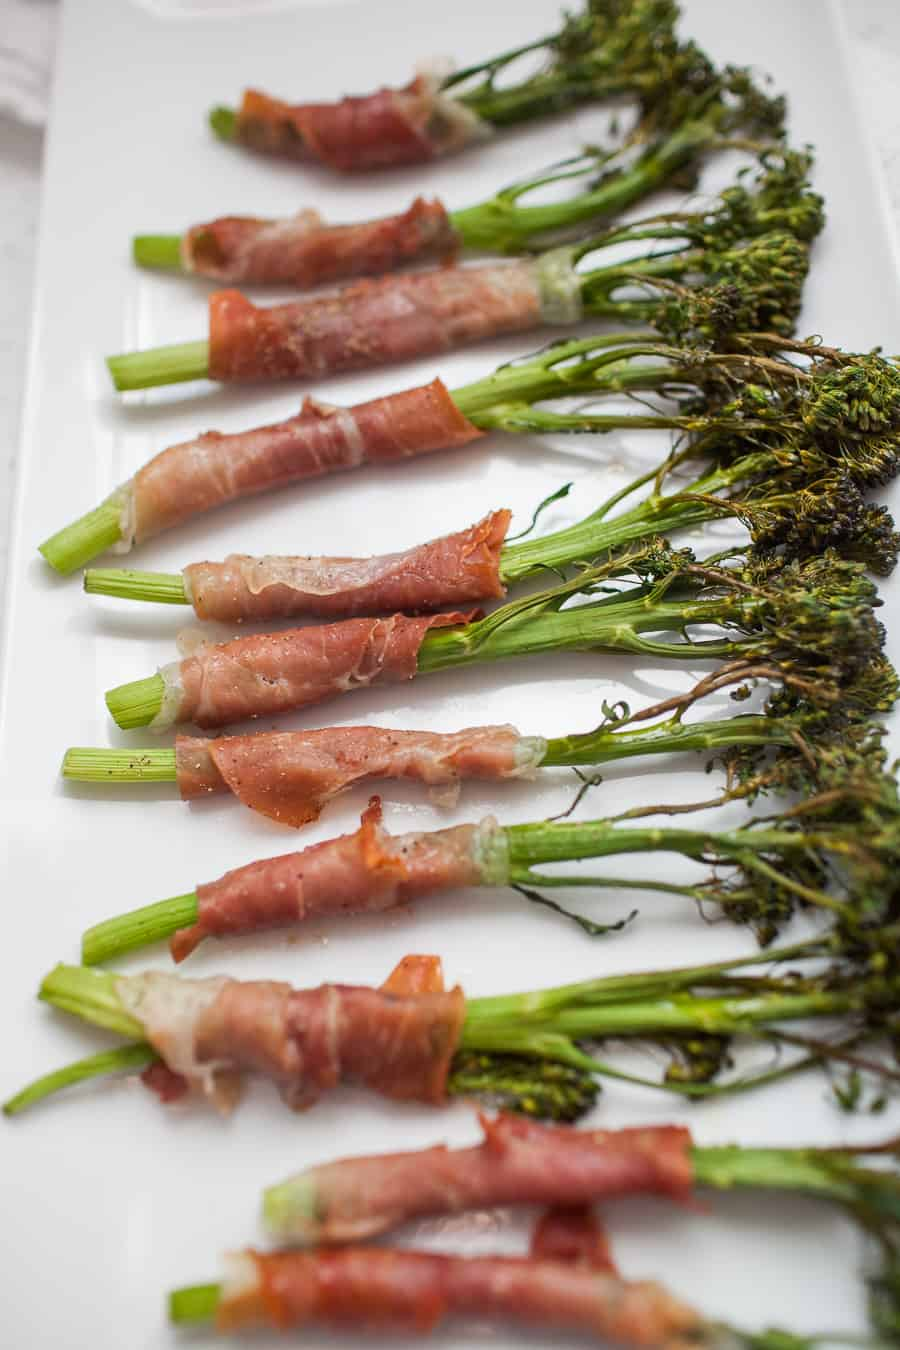 Prosciutto wrapped broccolini is the perfect side for pretty much any dinner! It's fancy, but incredibly simple to make with only two ingredients. Take 15 minutes to make this delicious side dish for dinner ASAP.?